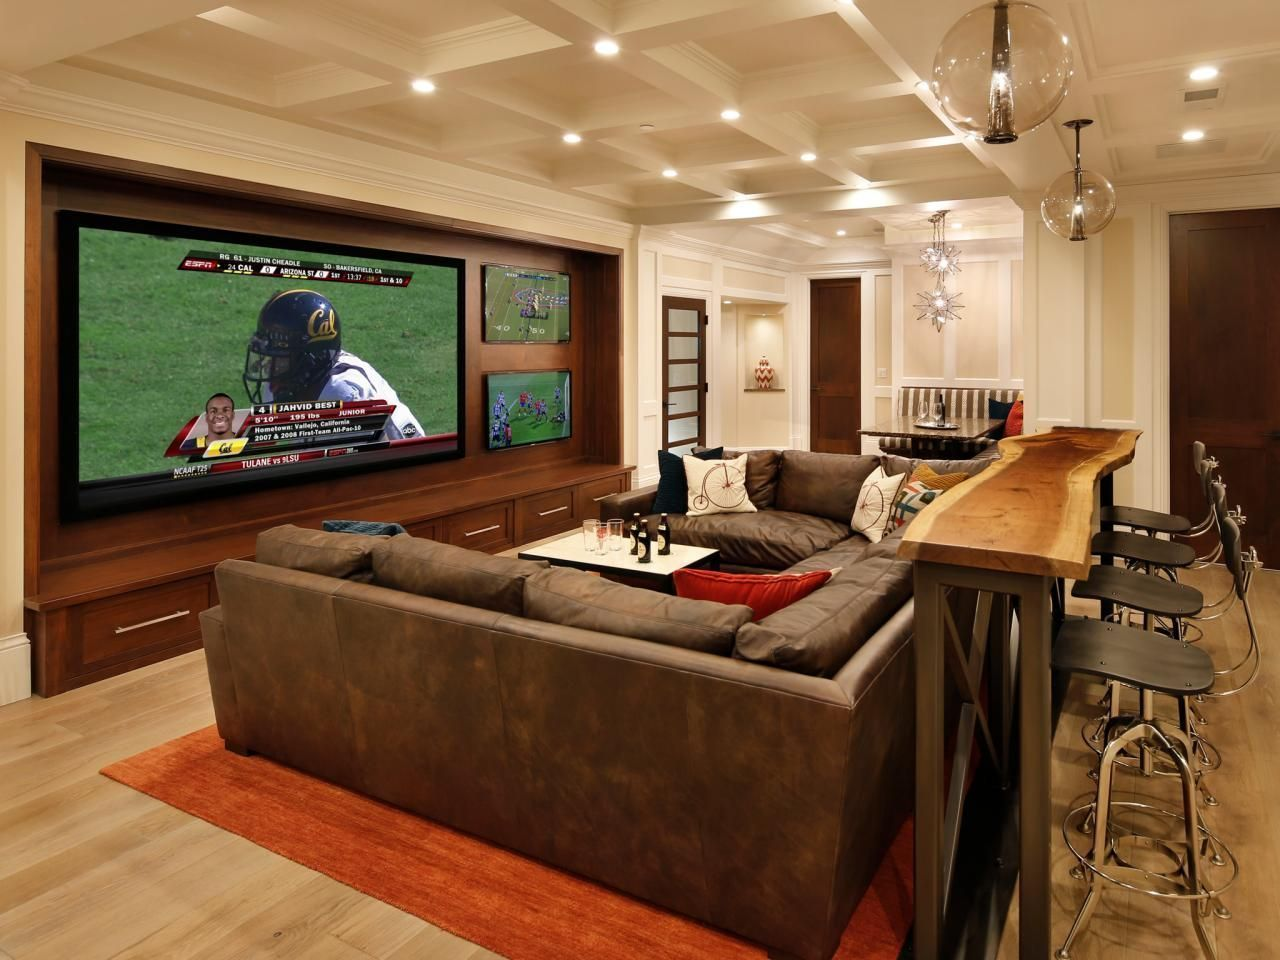 Bat home theater ideas, DIY, small spaces, budget ... Home Design Ideas For Movie Rs on design fashion, landscaping for home, decorating for home, design organization, design flowers, projects for home, kitchen design for home, storage for home, garden design for home, paint for home, interiors for home, inspiration for home, lighting for home, flooring for home, products for home, design patterns for home, shower designs for home, colors for home, bamboo for home, accessories for home,